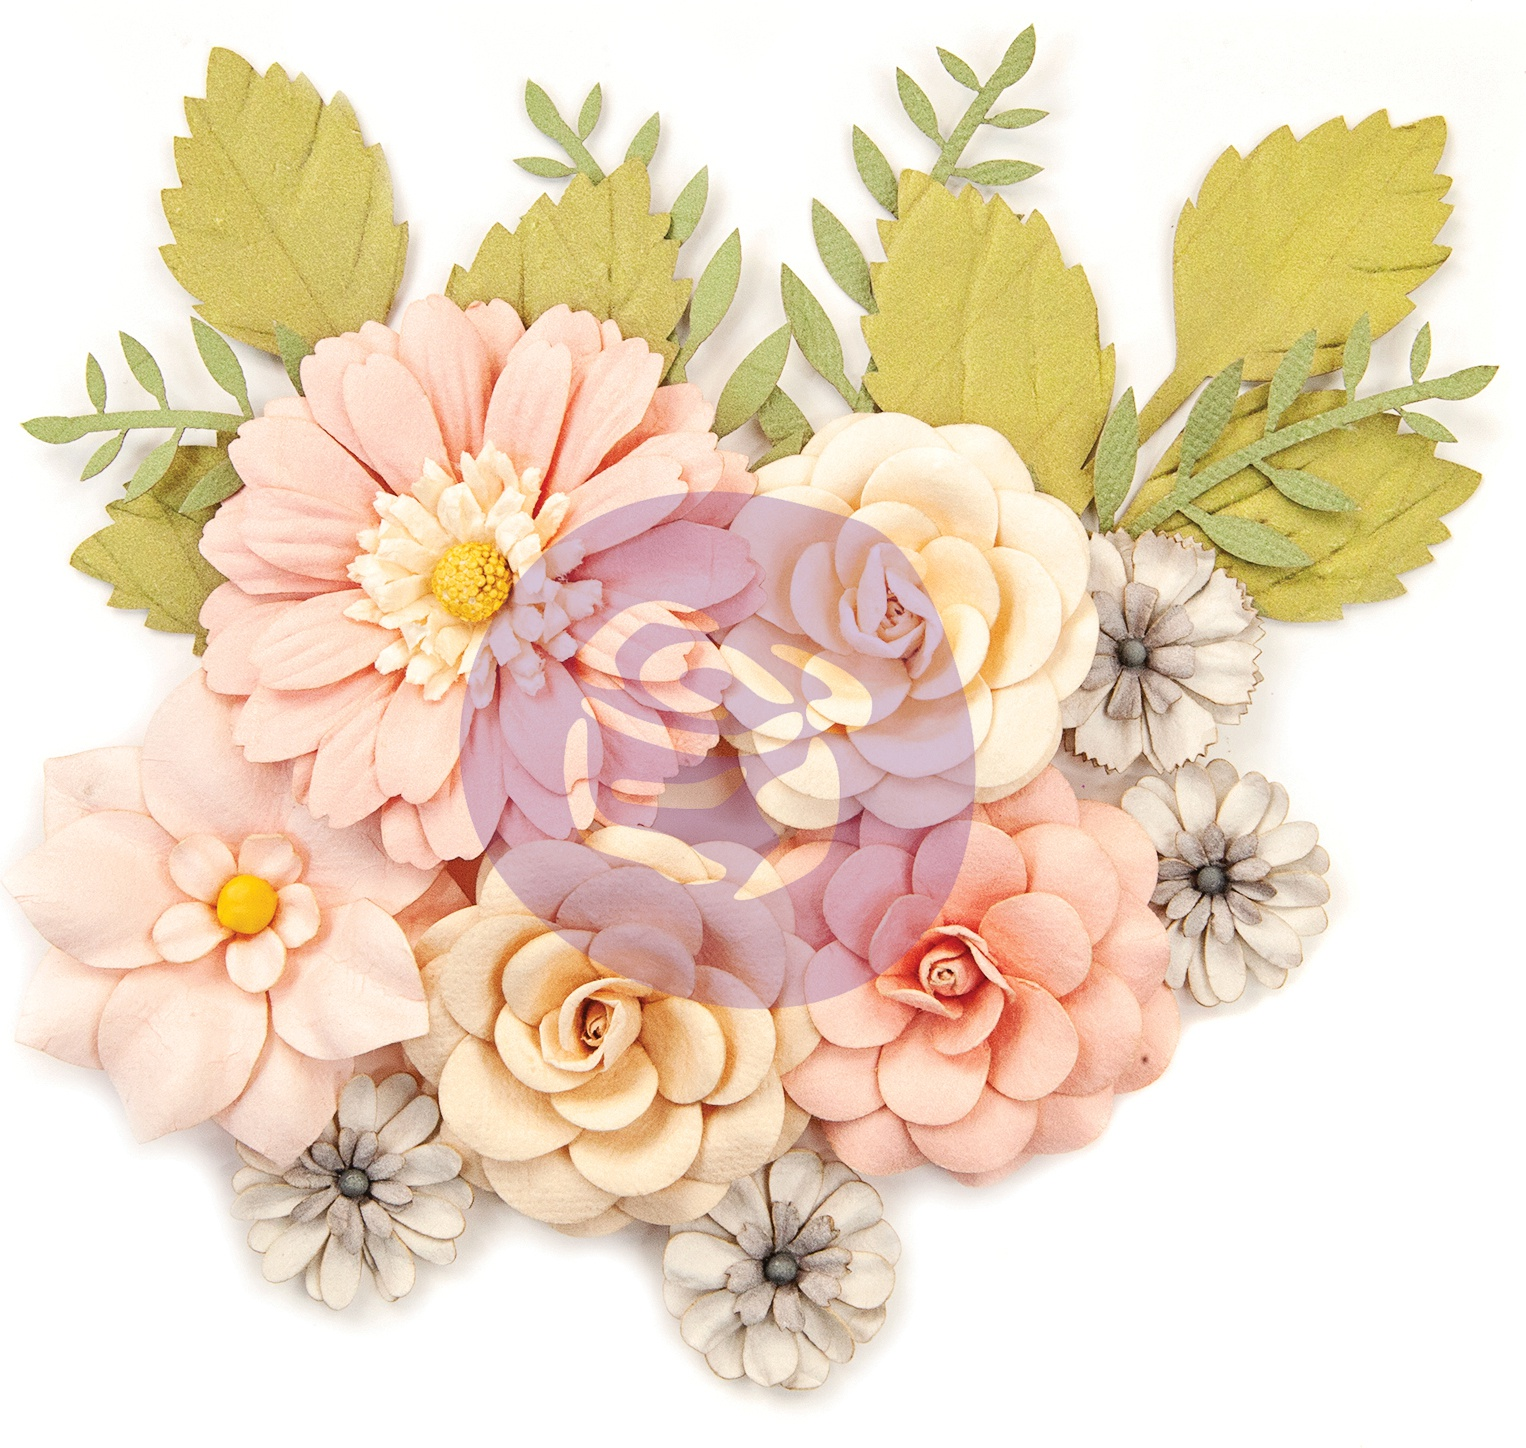 Prima Marketing Spring Farmhouse Mulberry Paper Flowers 15/P-Everyday Beauty